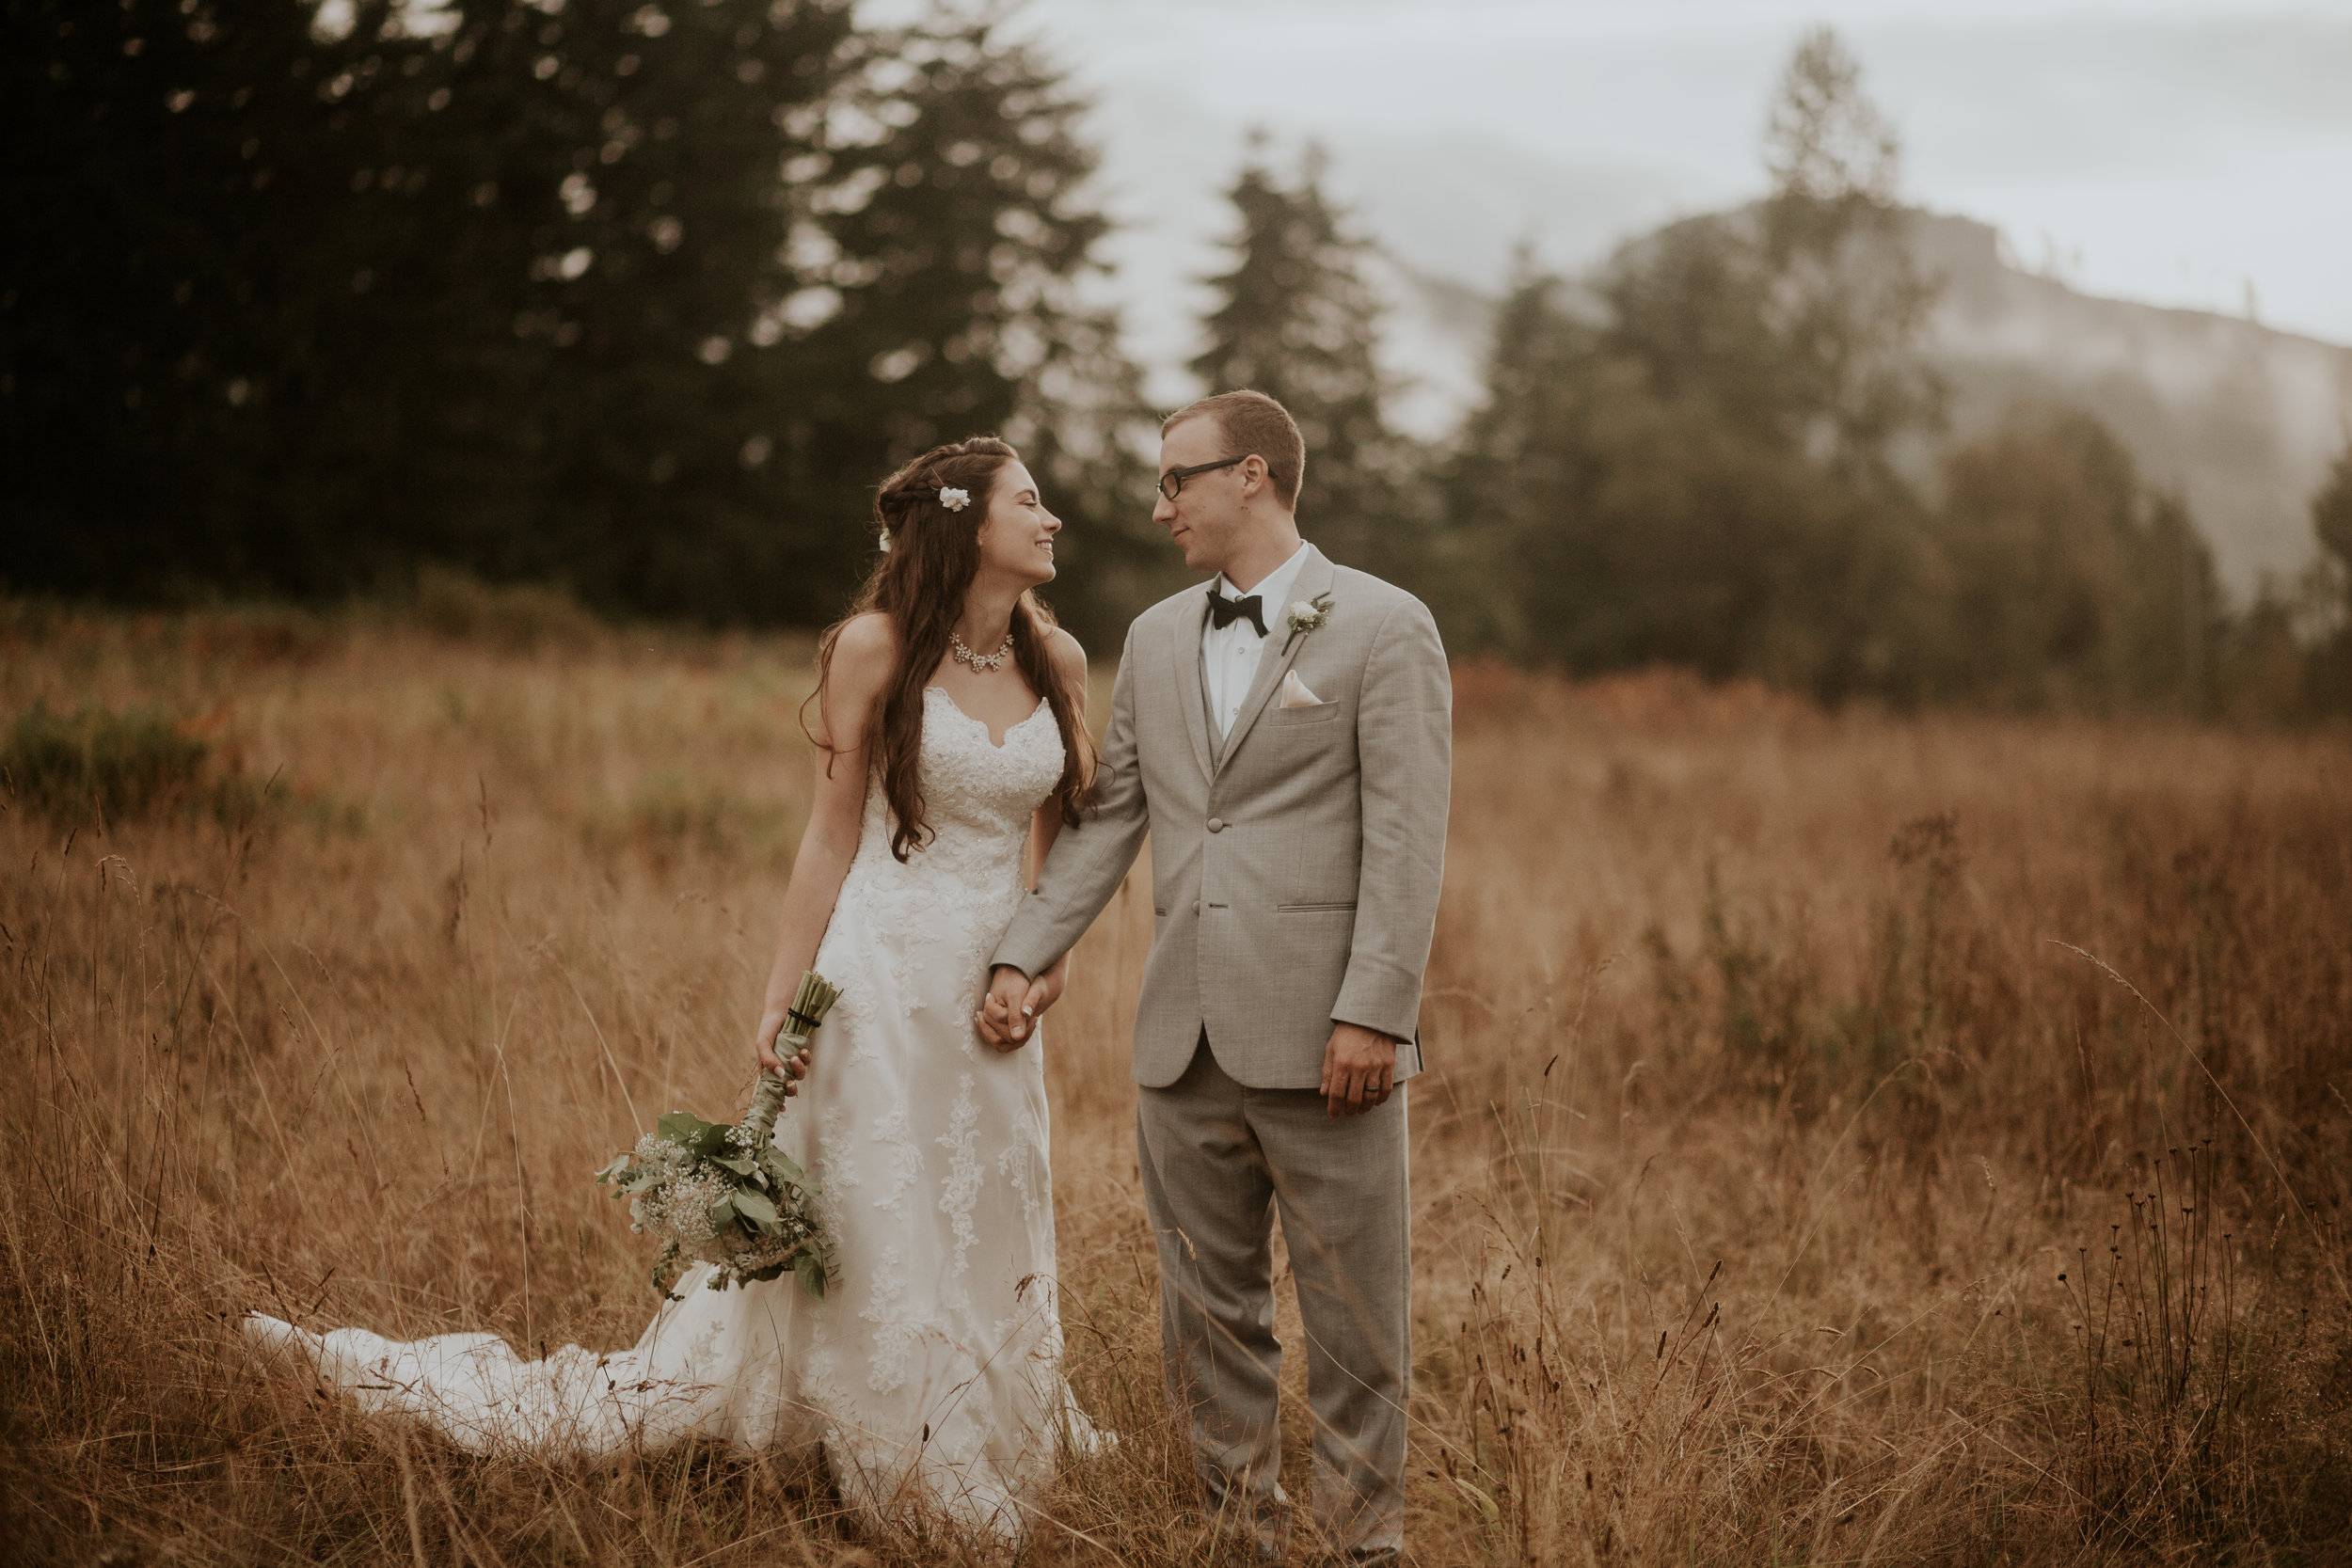 Port-Angeles-elopement-wedding-pnw-olympic-peninsula-photographer-portrait-kayladawnphoto-kayla-dawn-photography-olympic-national-park-107.jpg